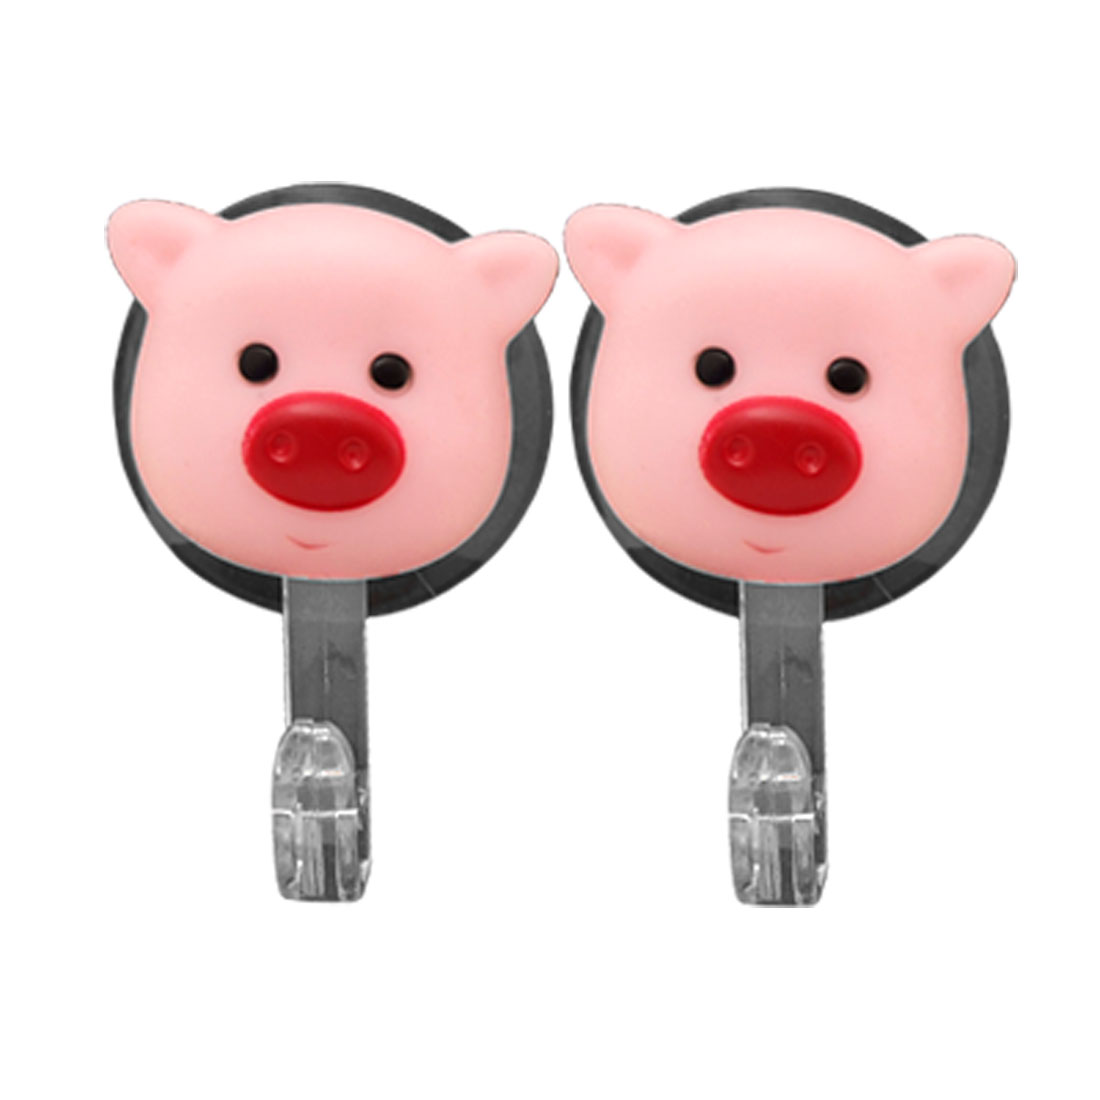 Mini Pink Pig Suction Cup Window Decorative Hanger Hook